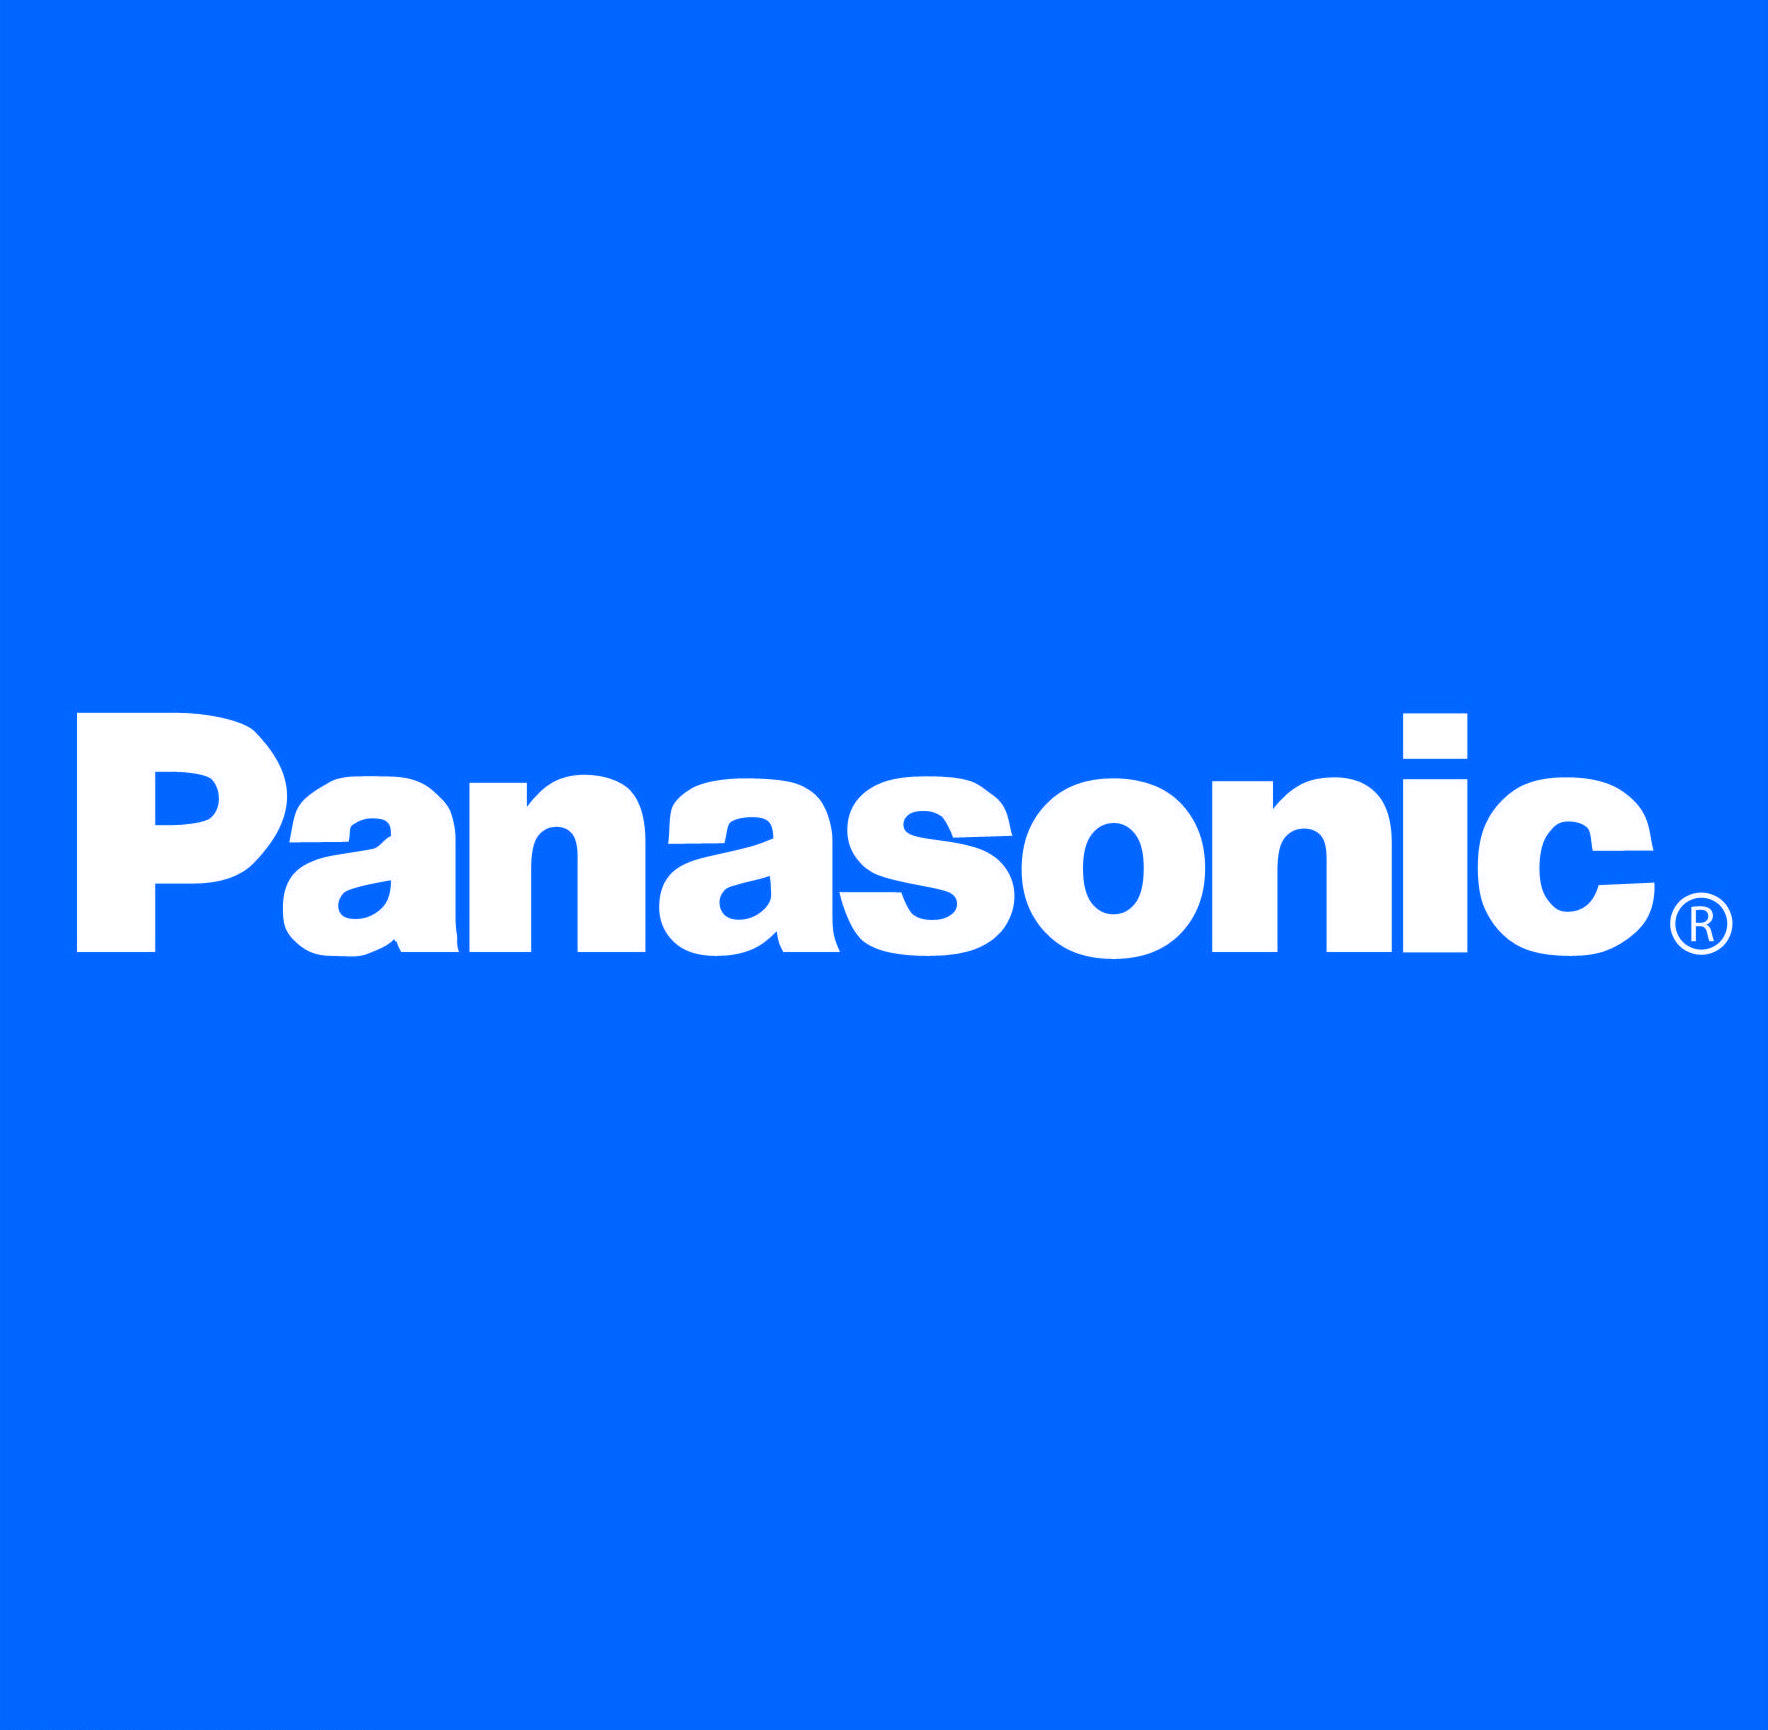 Up to 75% Off Black Friday Doorbuster Deals @Panasonic